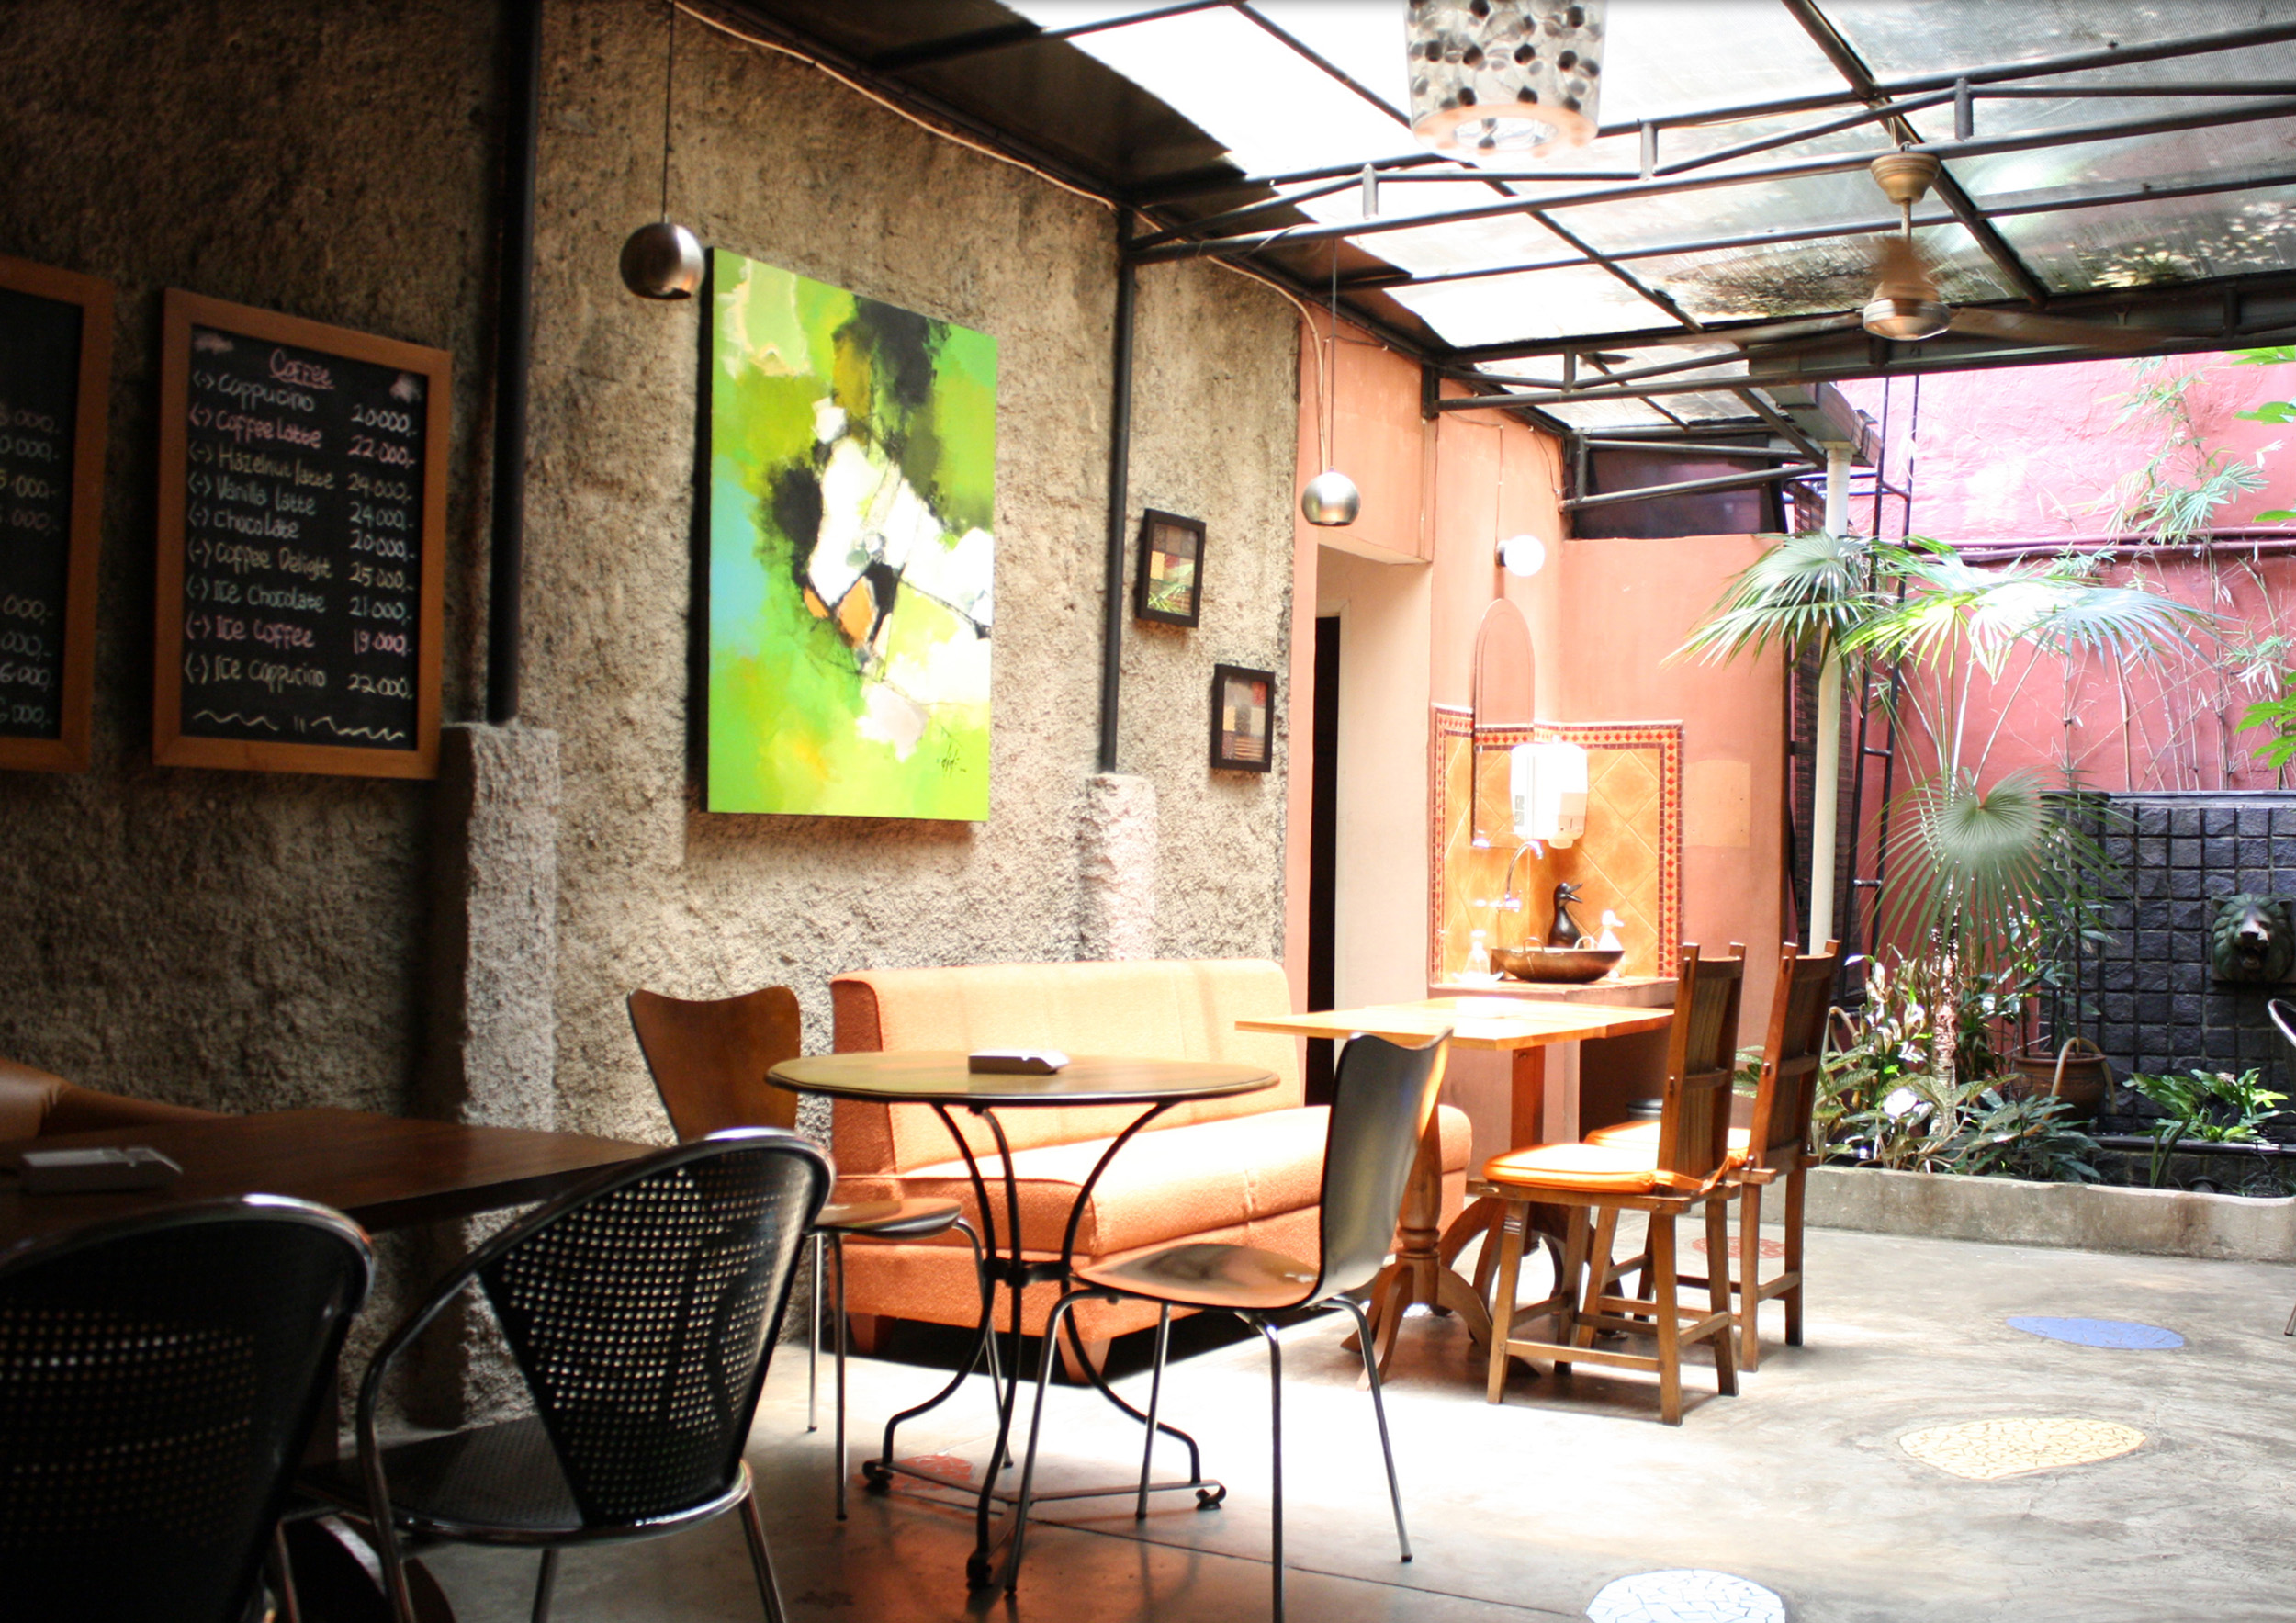 SAUNG POST  leisure and culinary review